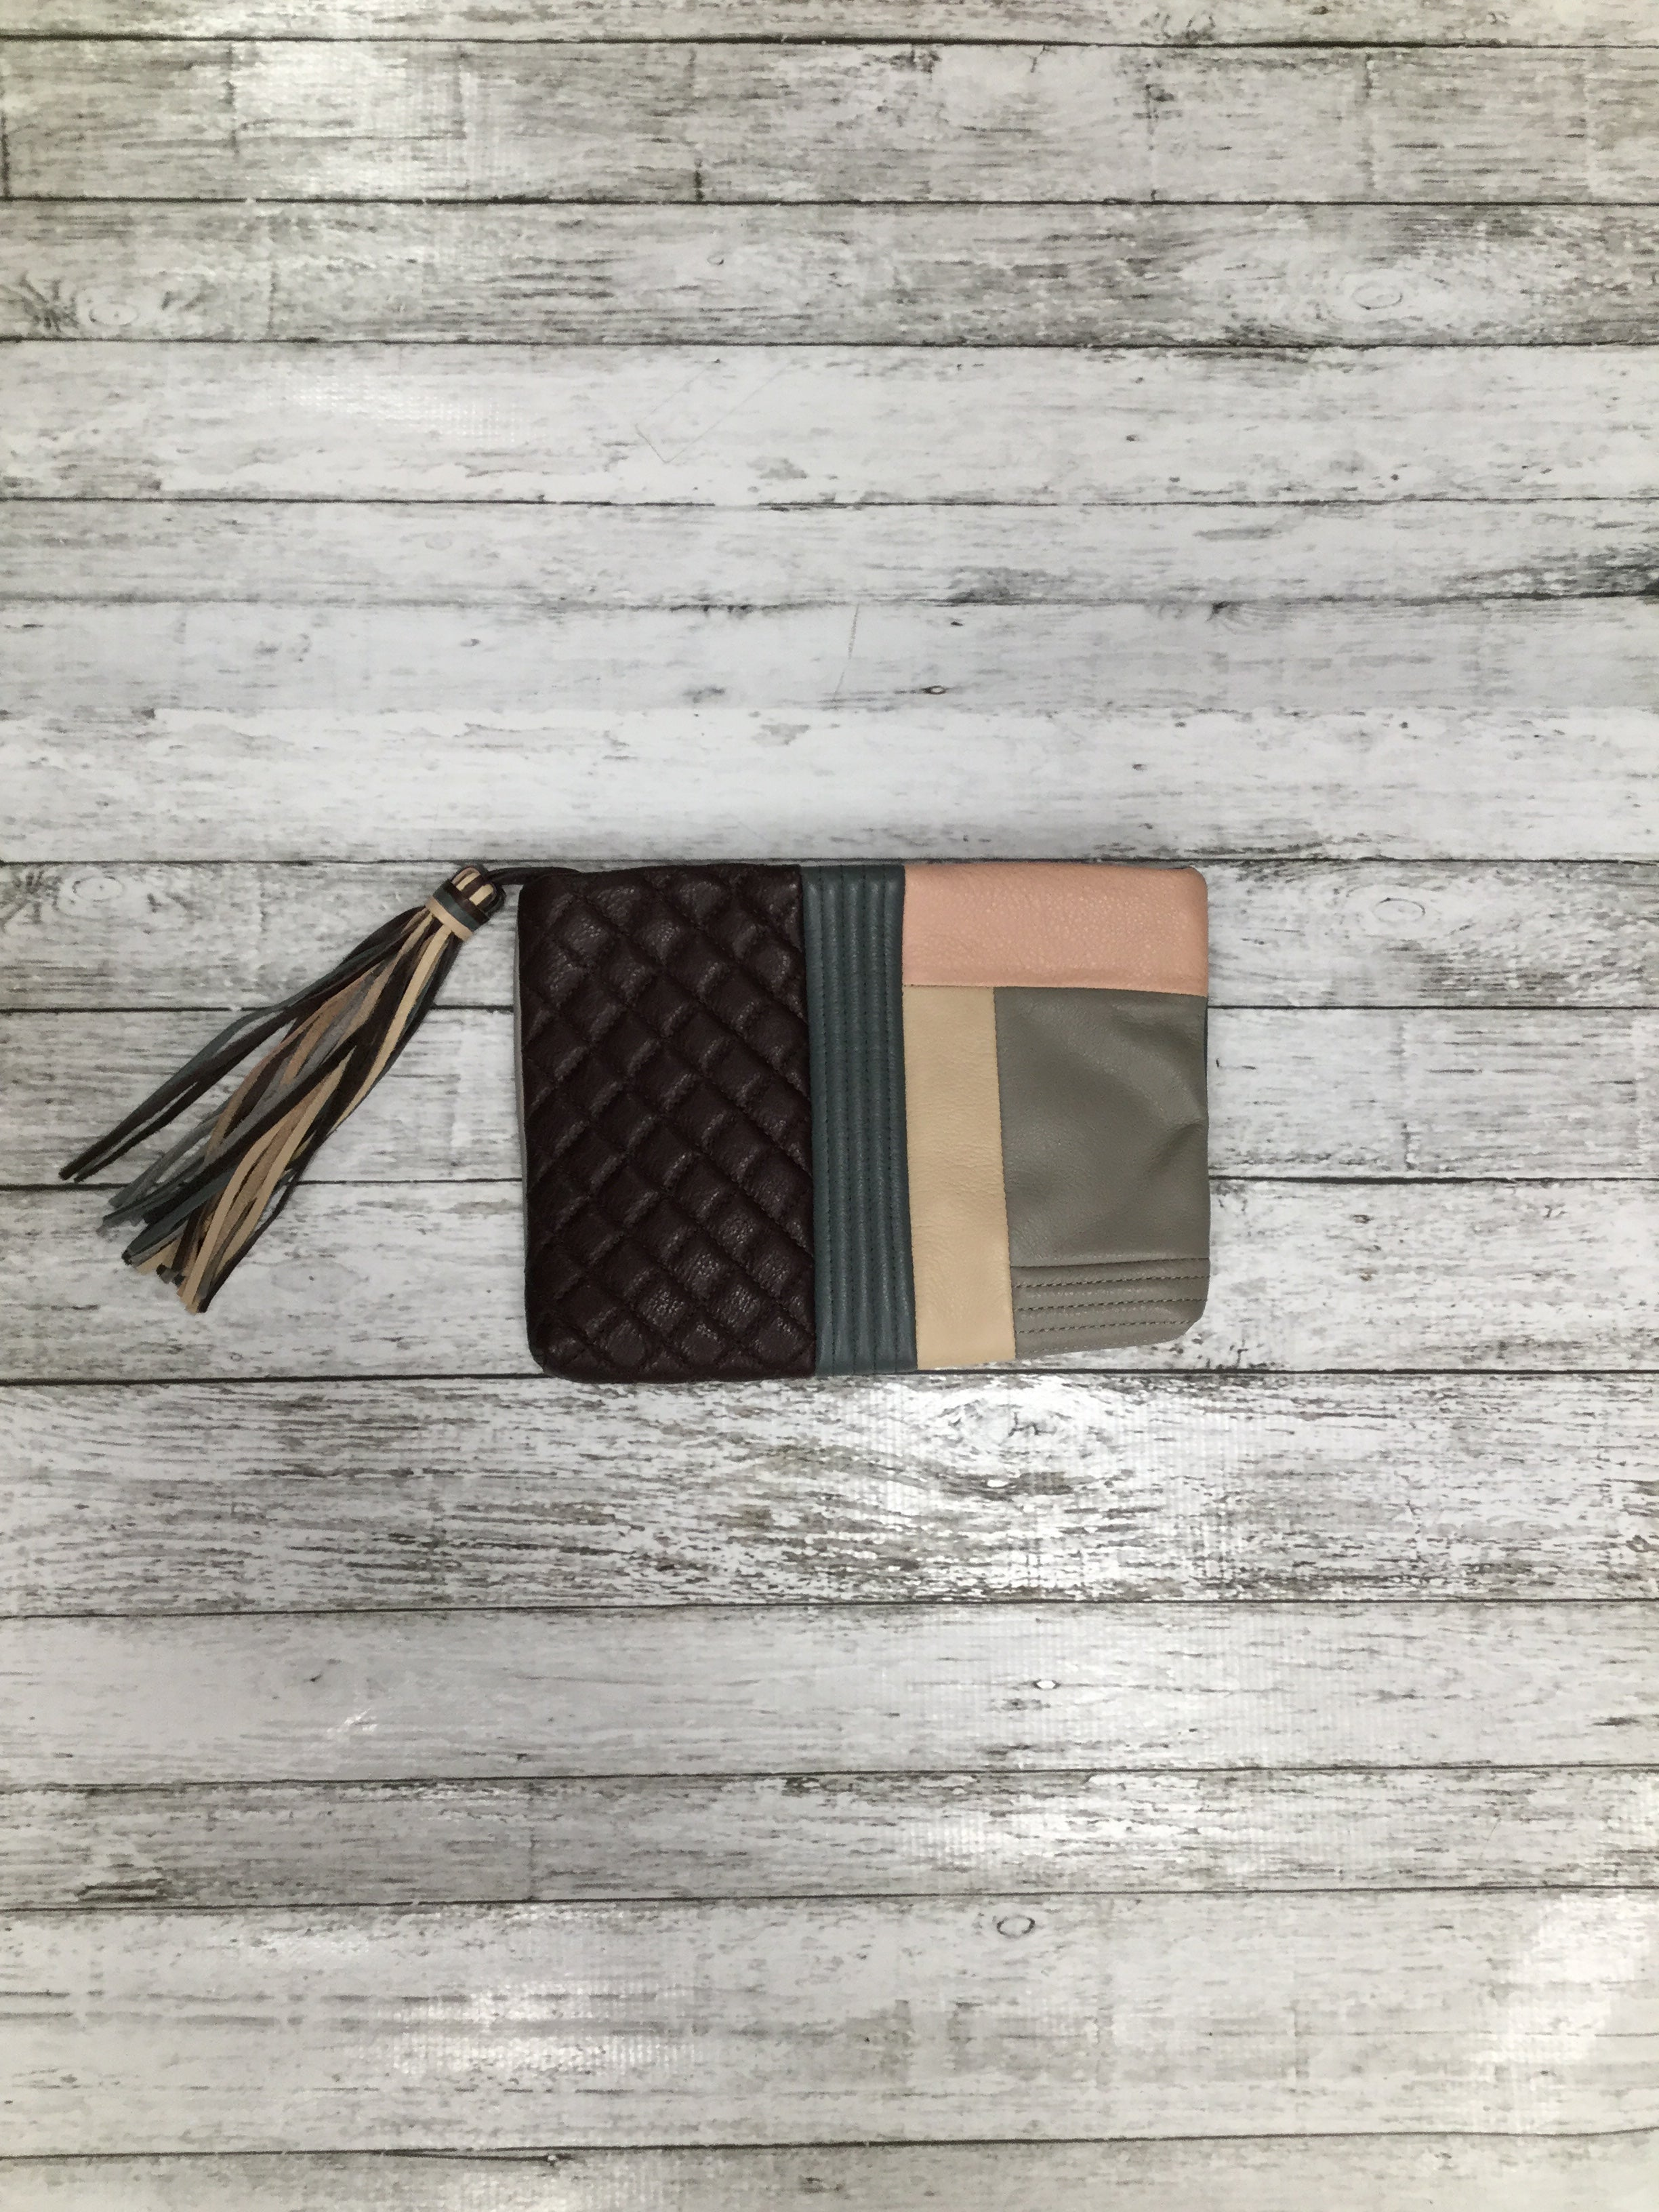 Primary Photo - BRAND:  CMB , STYLE: CLUTCH , COLOR: MULTI , OTHER INFO: MARGOT CLUTCH - , SKU: 105-3221-8652